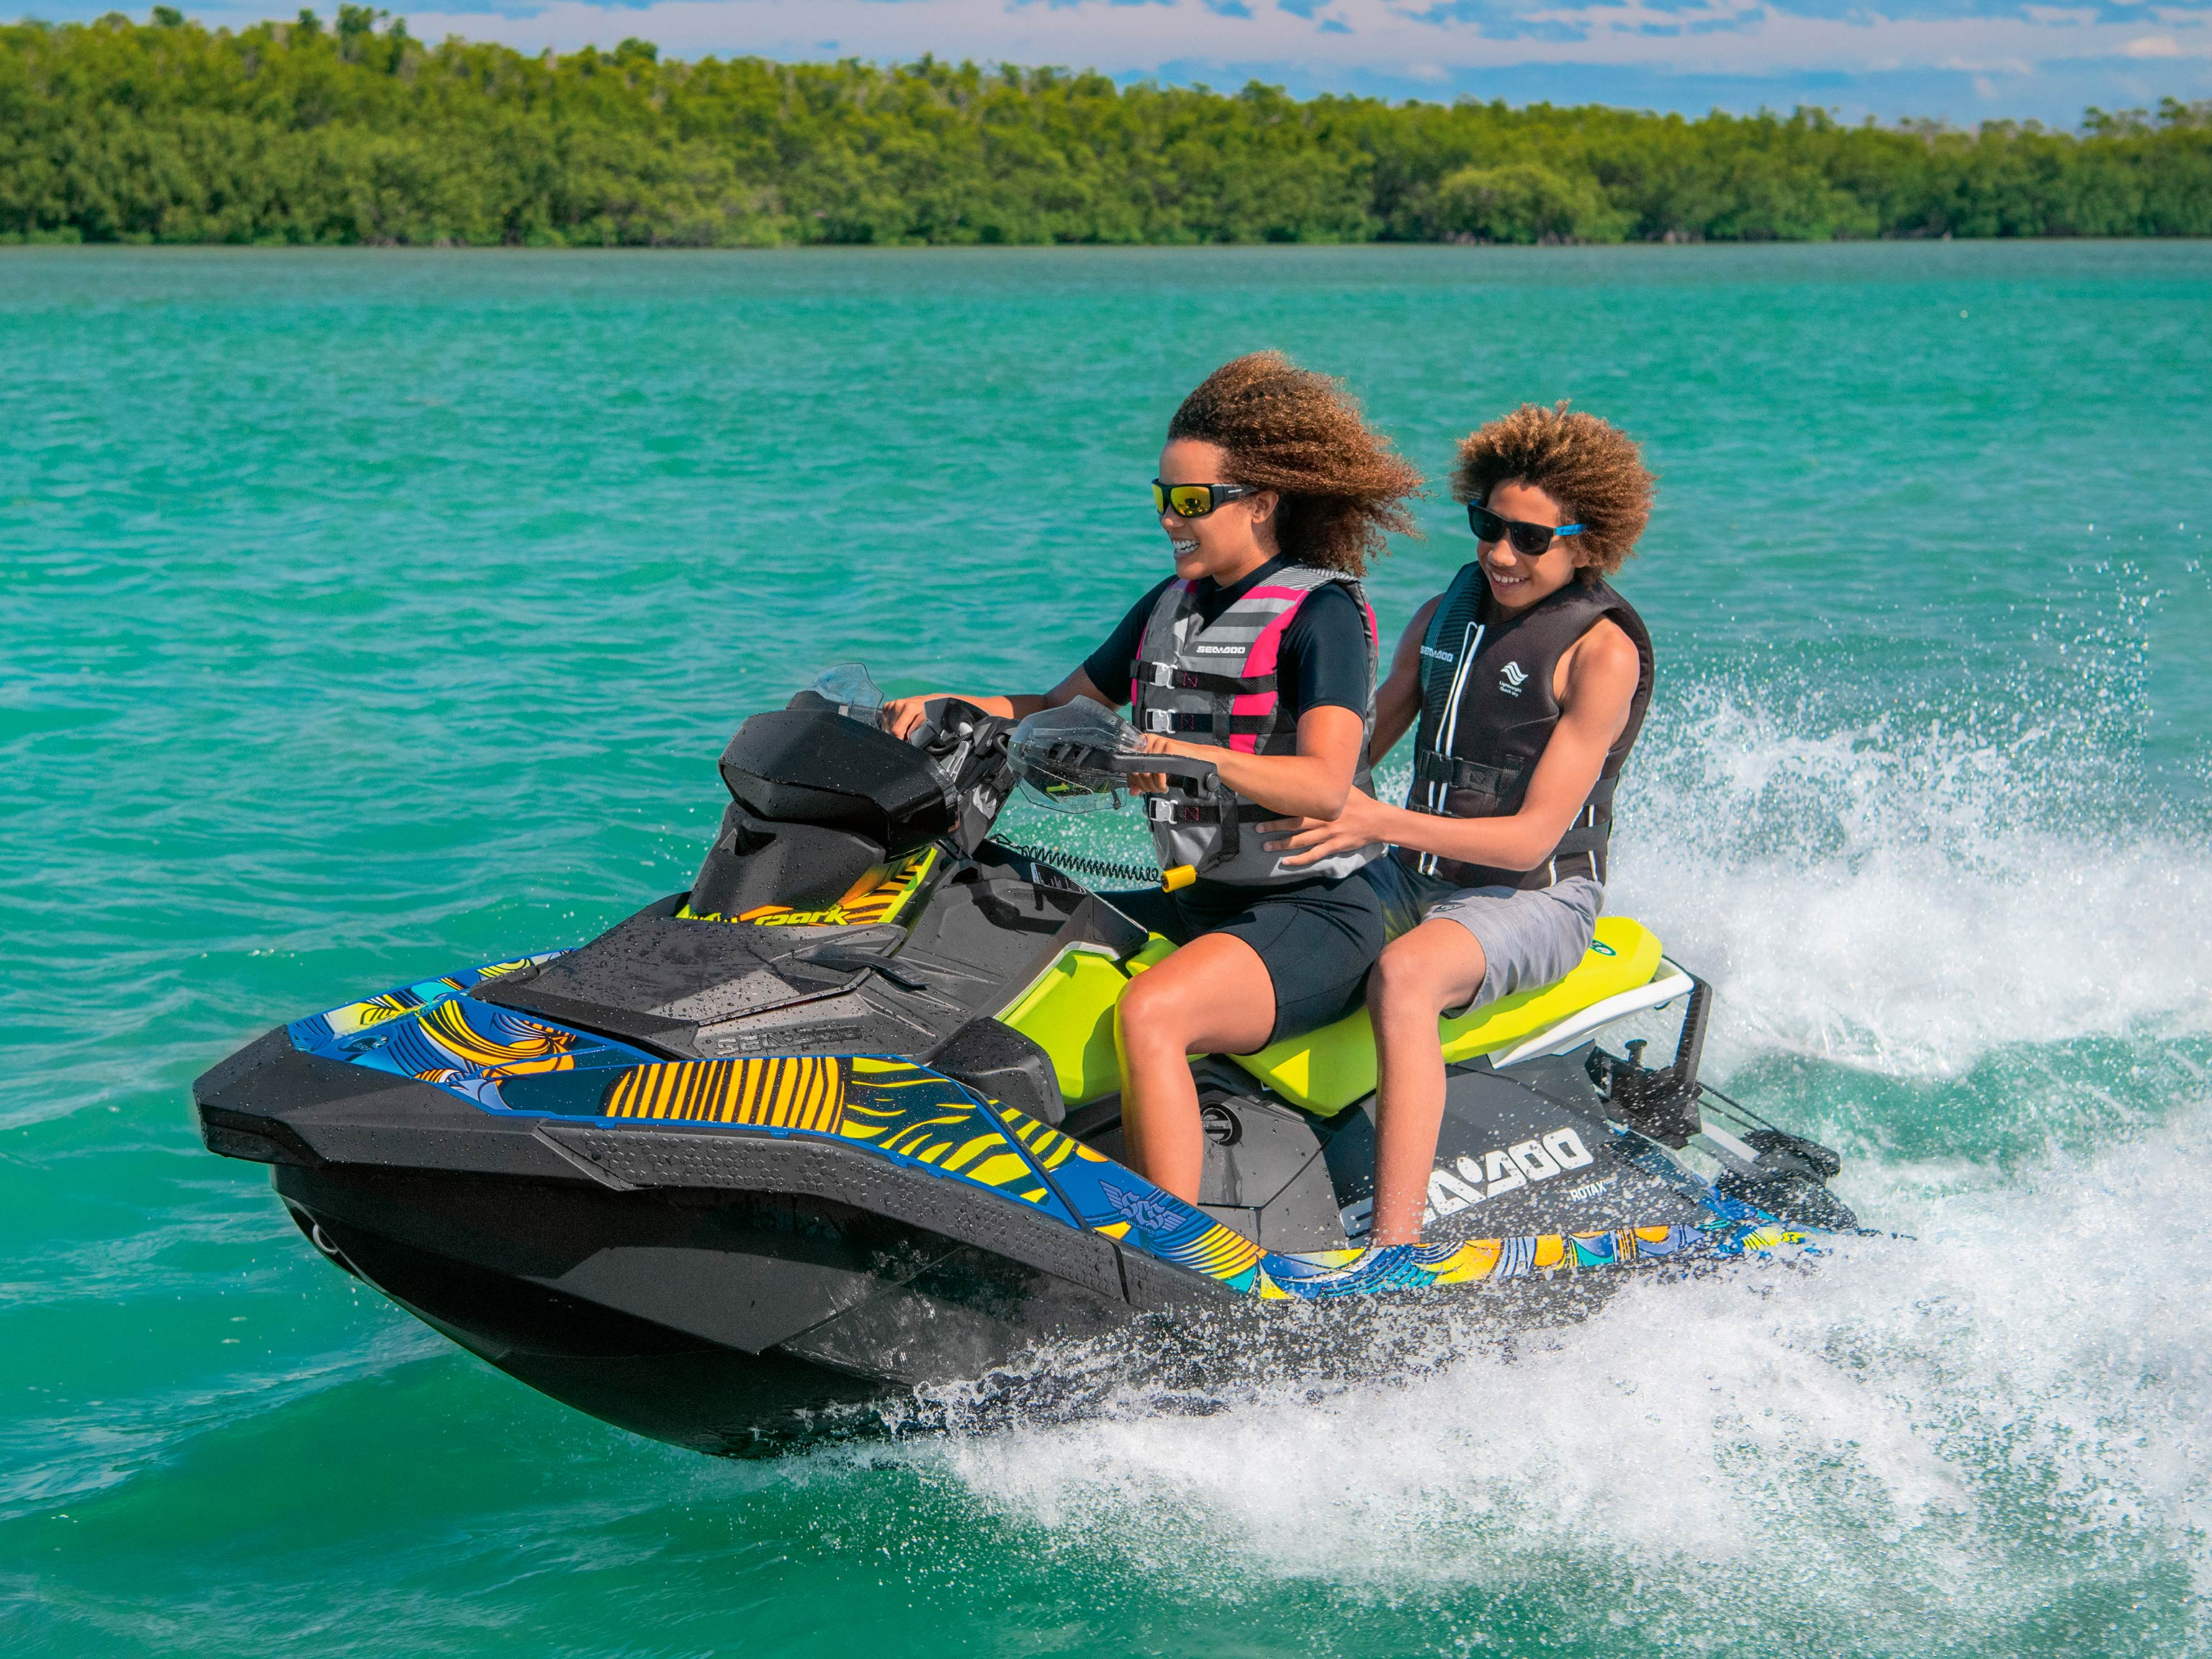 Mother and son riding a Sea-Doo SPARK